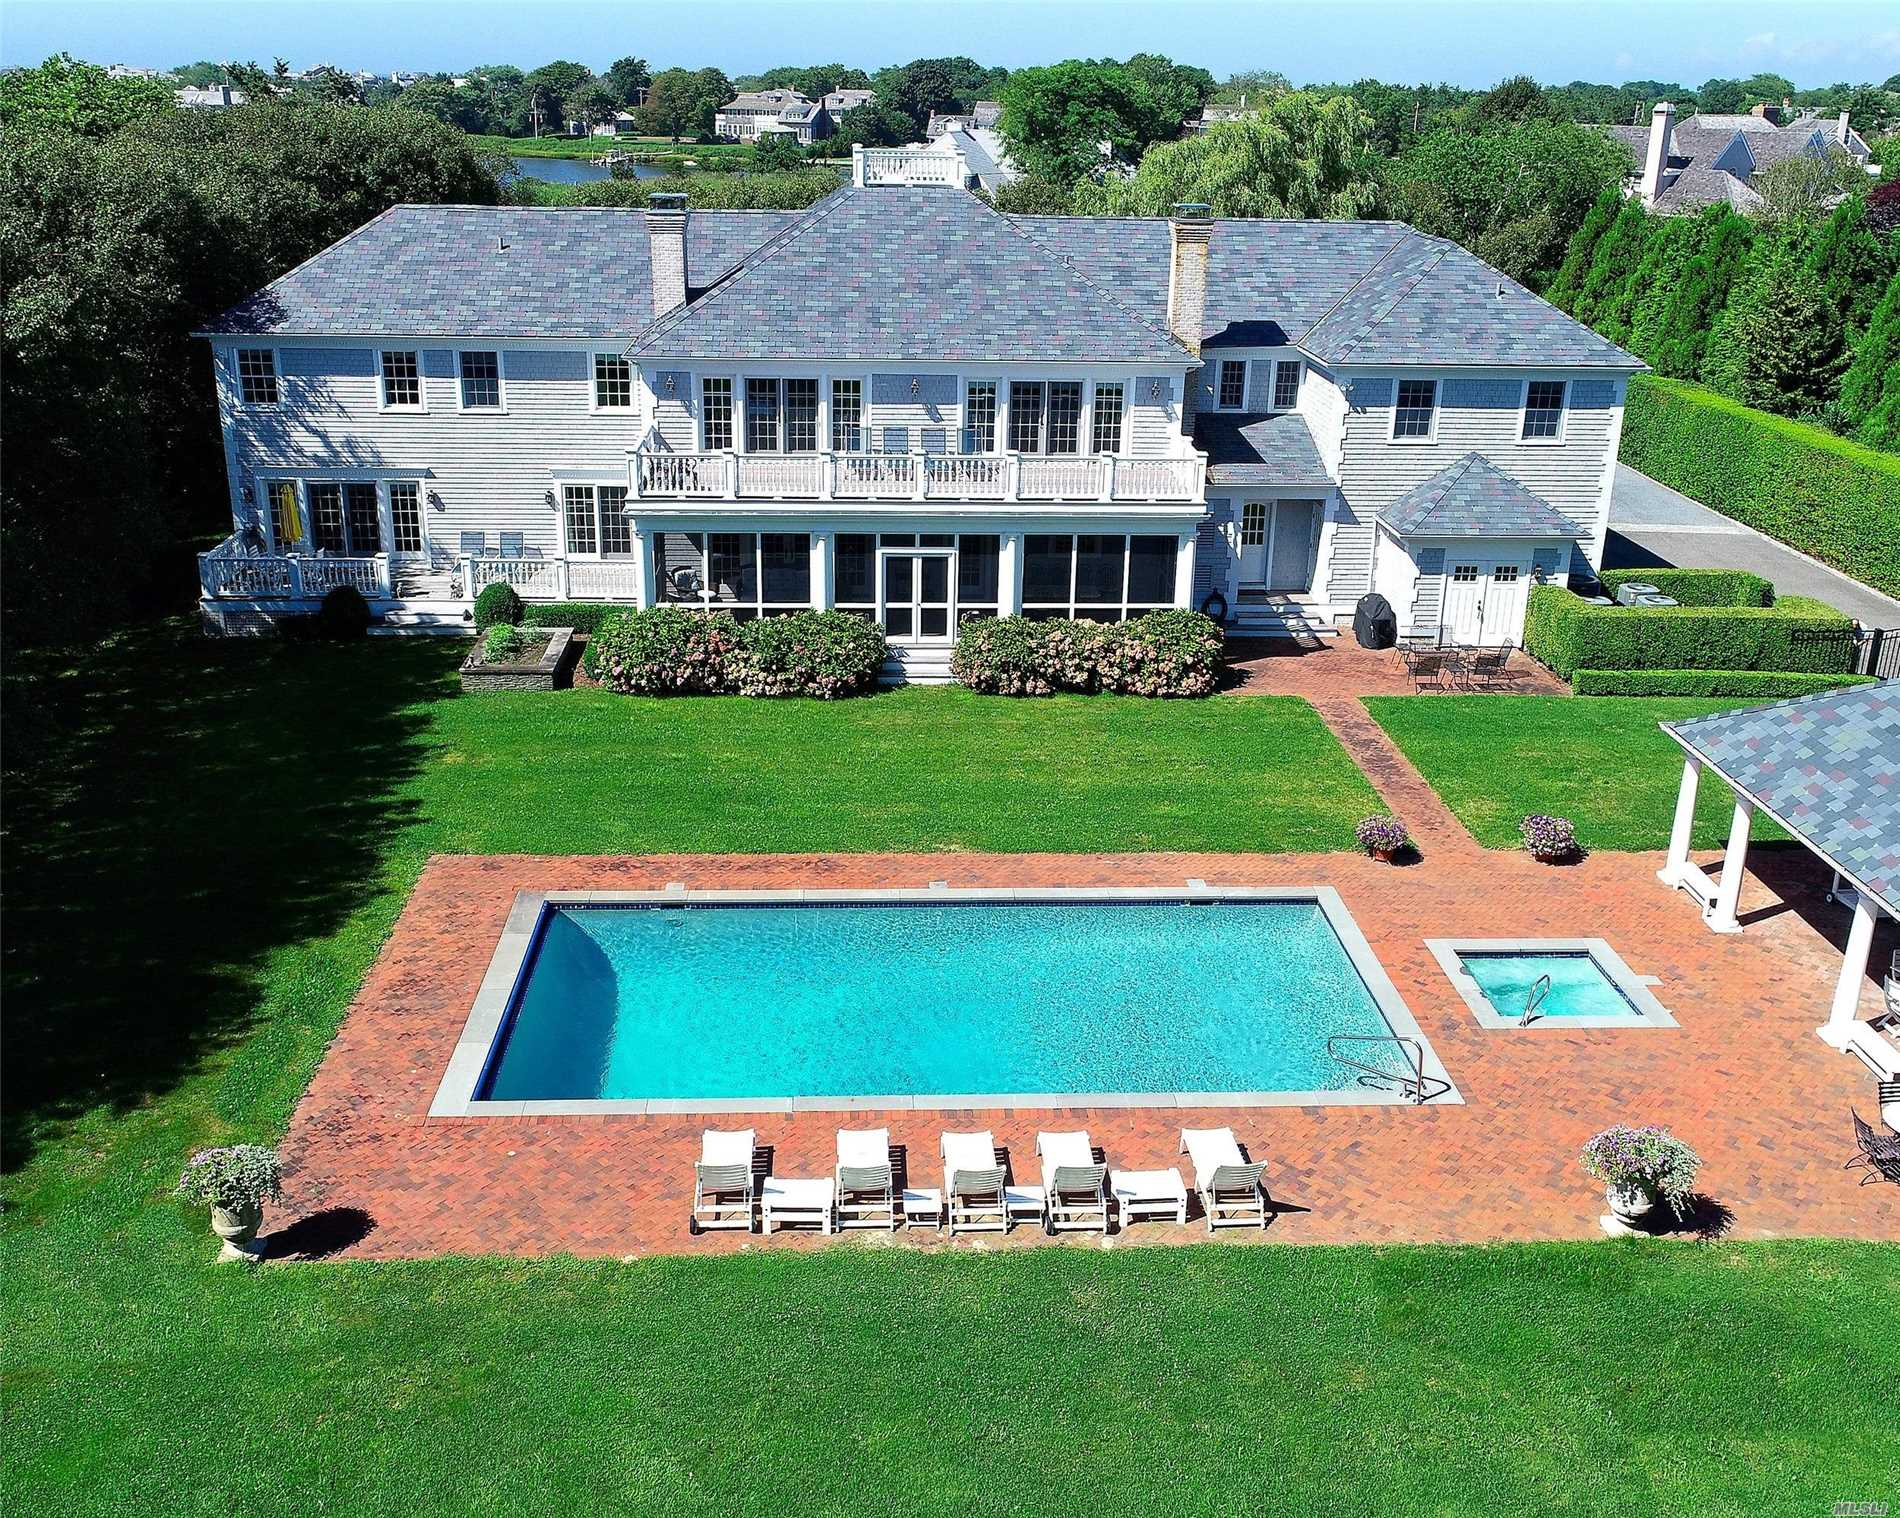 Just Minutes From Quogue Beaches, This Custom-Designed Home Is Located On 1.2Acres In Quogue's Desirable Estate Section. Built By Joe Spano In 2006 With Continuous Upgrades, It Offers The Best Of Both Worlds: An Architecturally Historic Feel With All The Modern Conveniences. Luxurious Detailing And Millwork Found Throughout The House, Extensive High-End Amenities (See Attached), Quogue's Low Taxes, And So Much More!